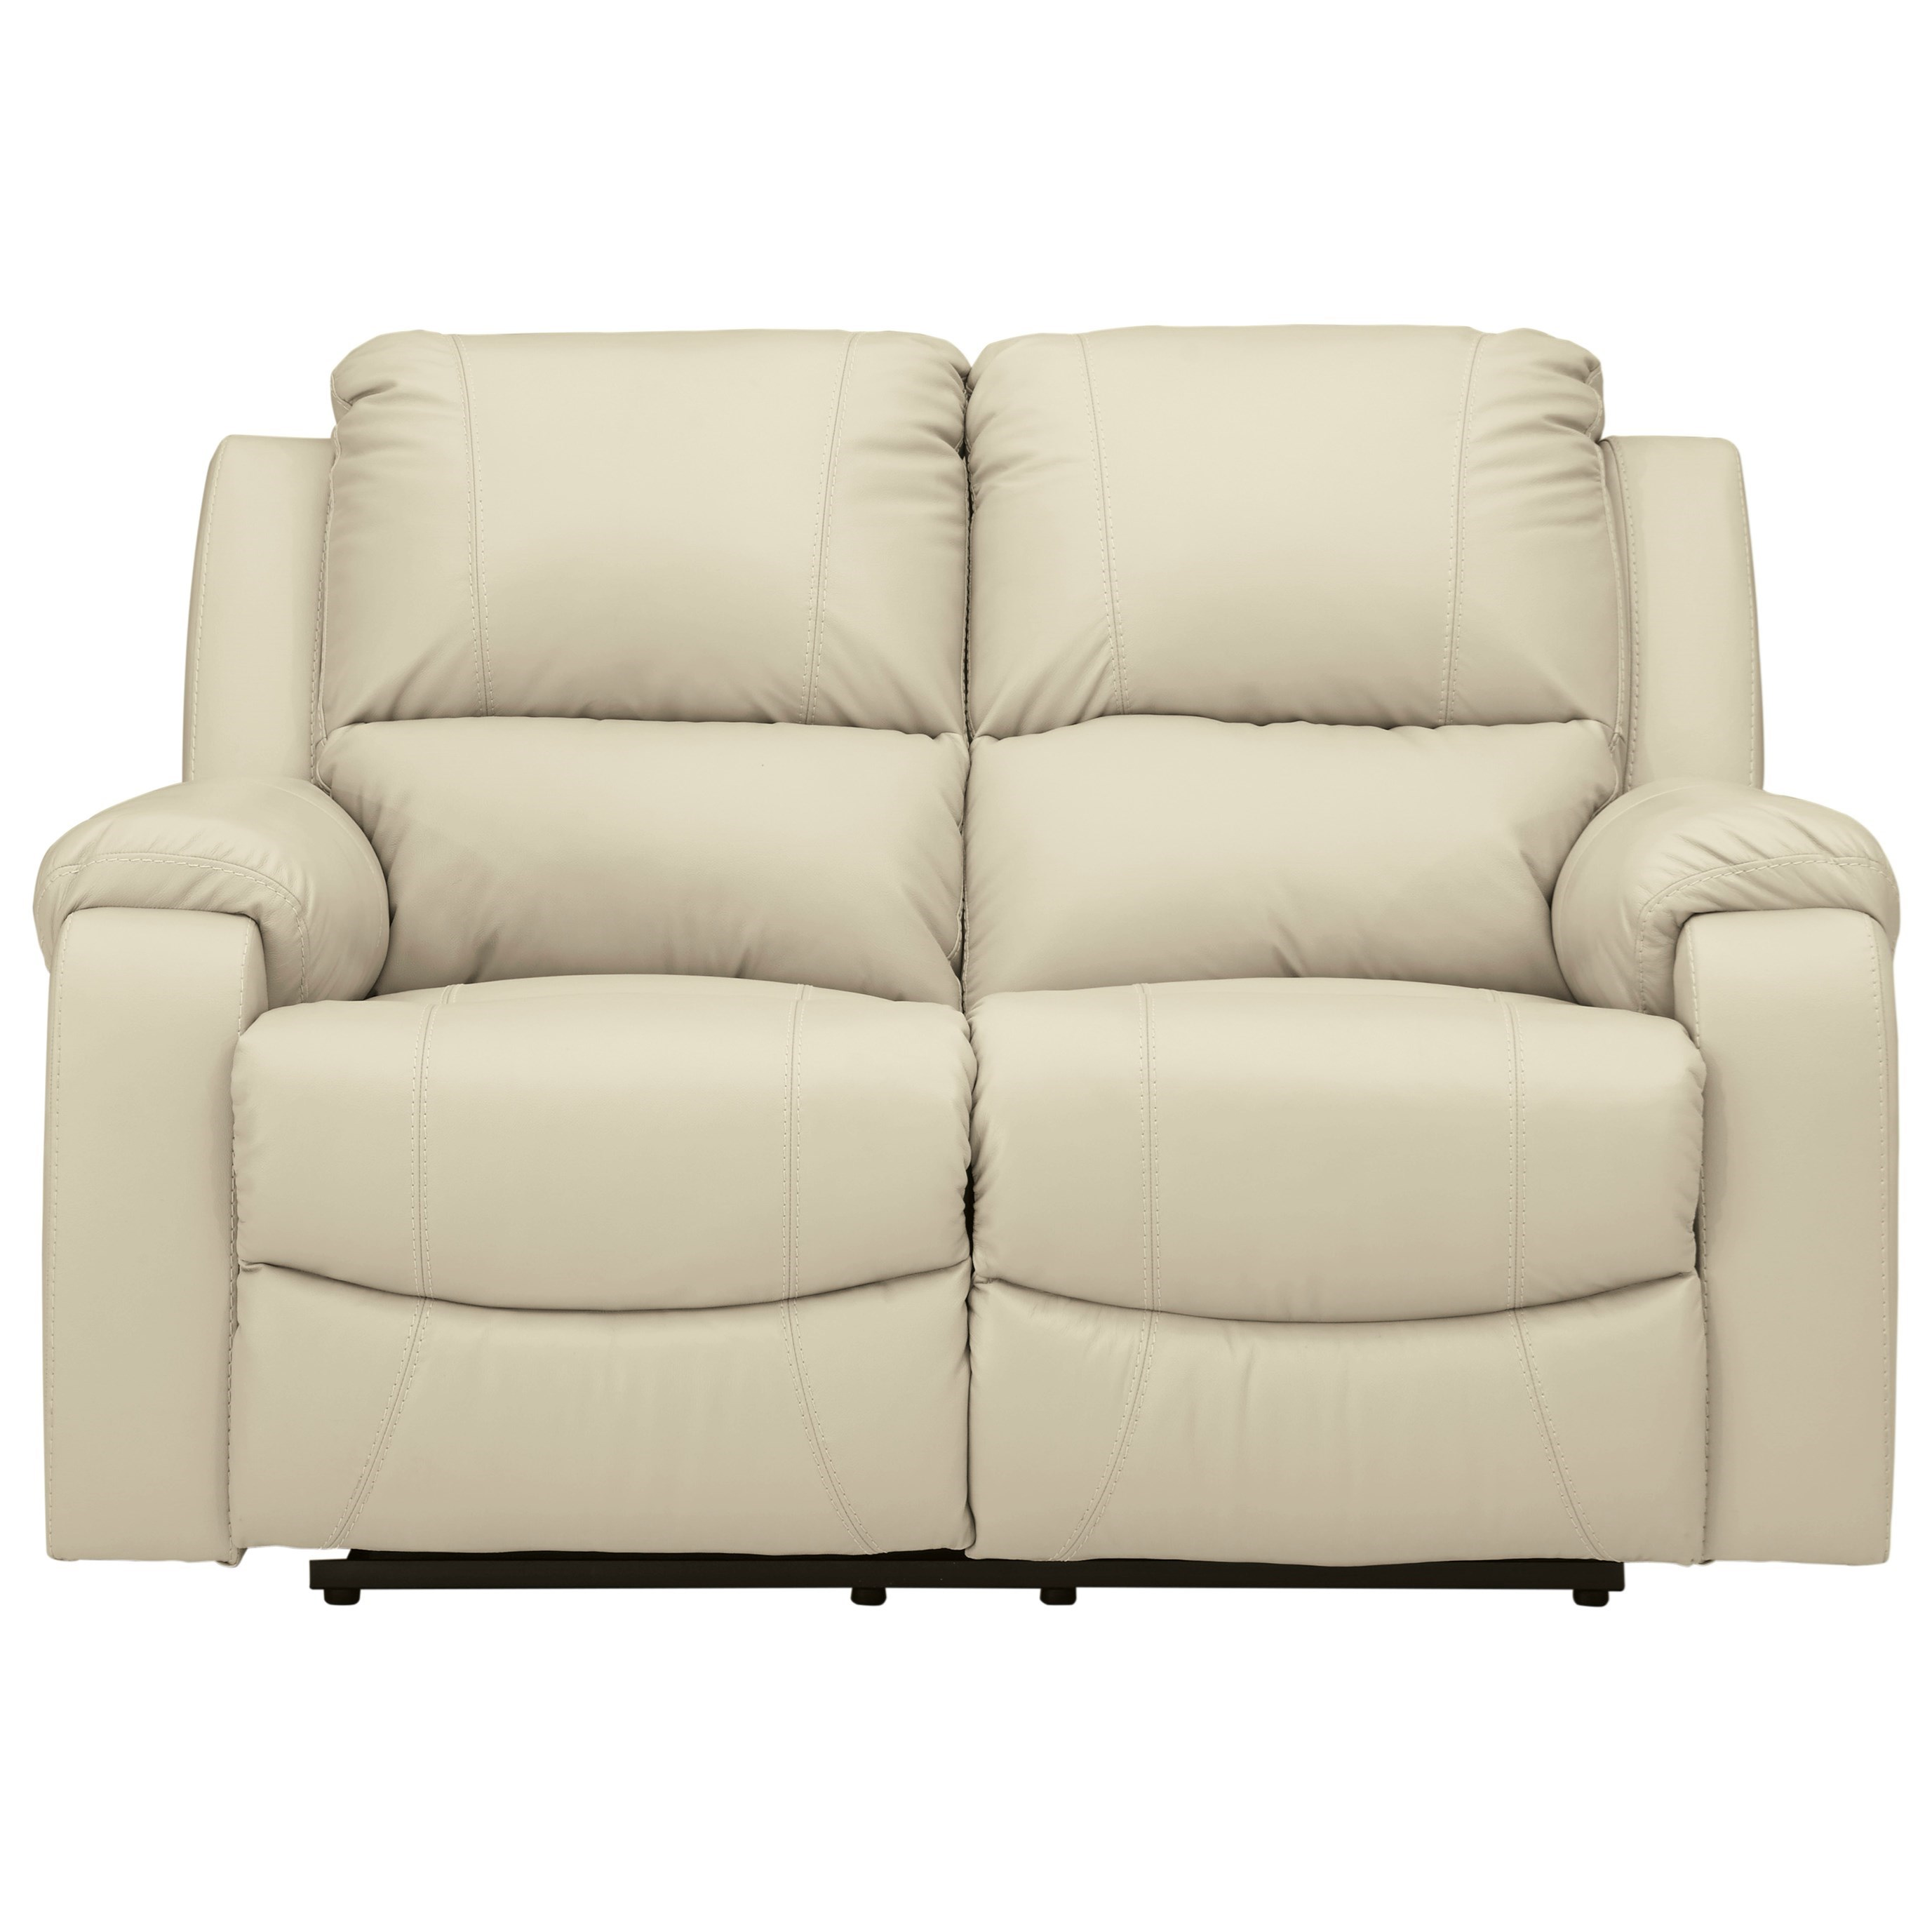 Rackingburg Power Reclining Loveseat by Signature Design by Ashley at HomeWorld Furniture